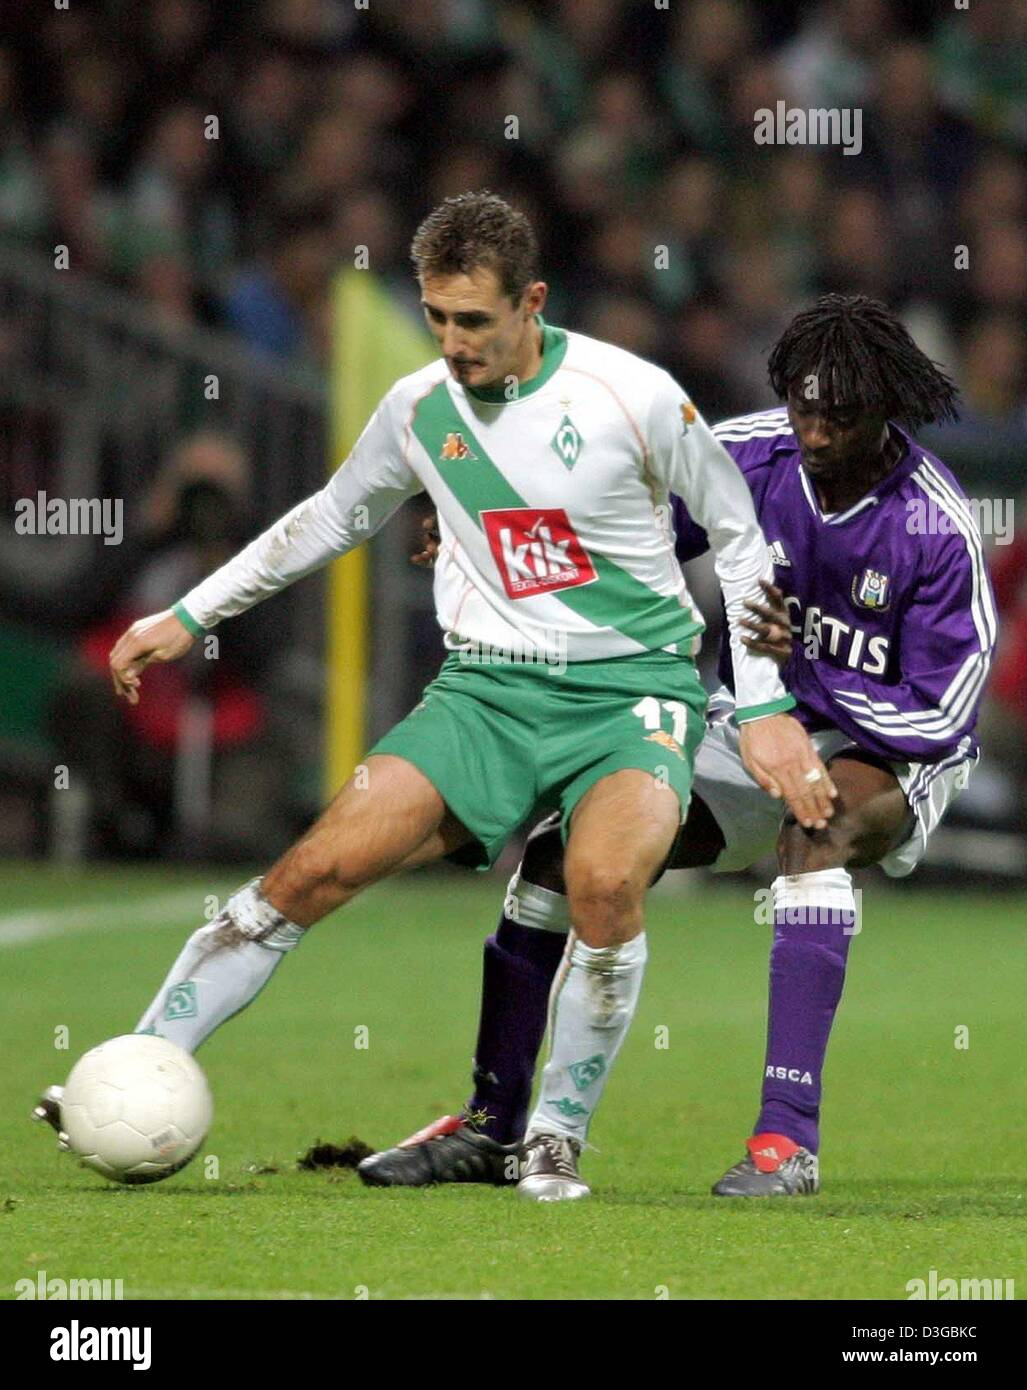 (dpa) - Werder Bremen's soccer player Miroslav Klose (L) fights for the ball with Anderlecht's Lamine Traore - Stock Image